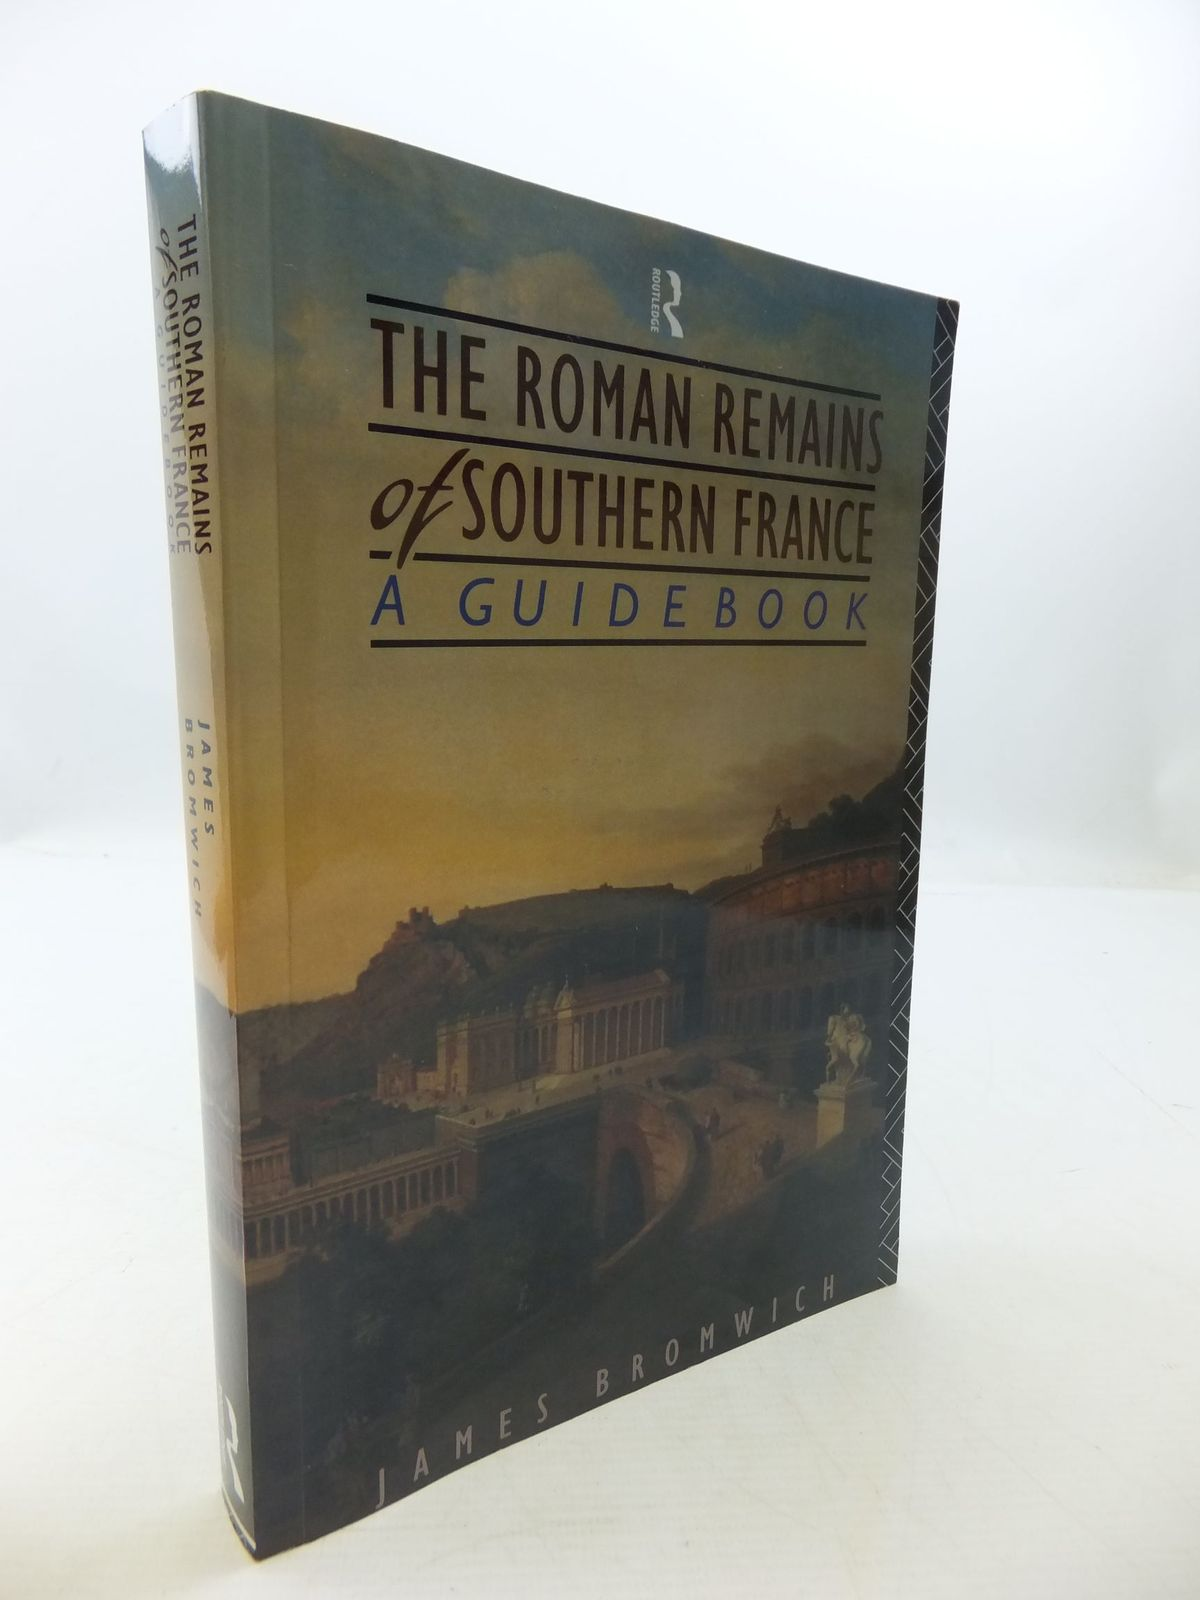 Photo of THE ROMAN REMAINS OF SOUTHERN FRANCE A GUIDEBOOK